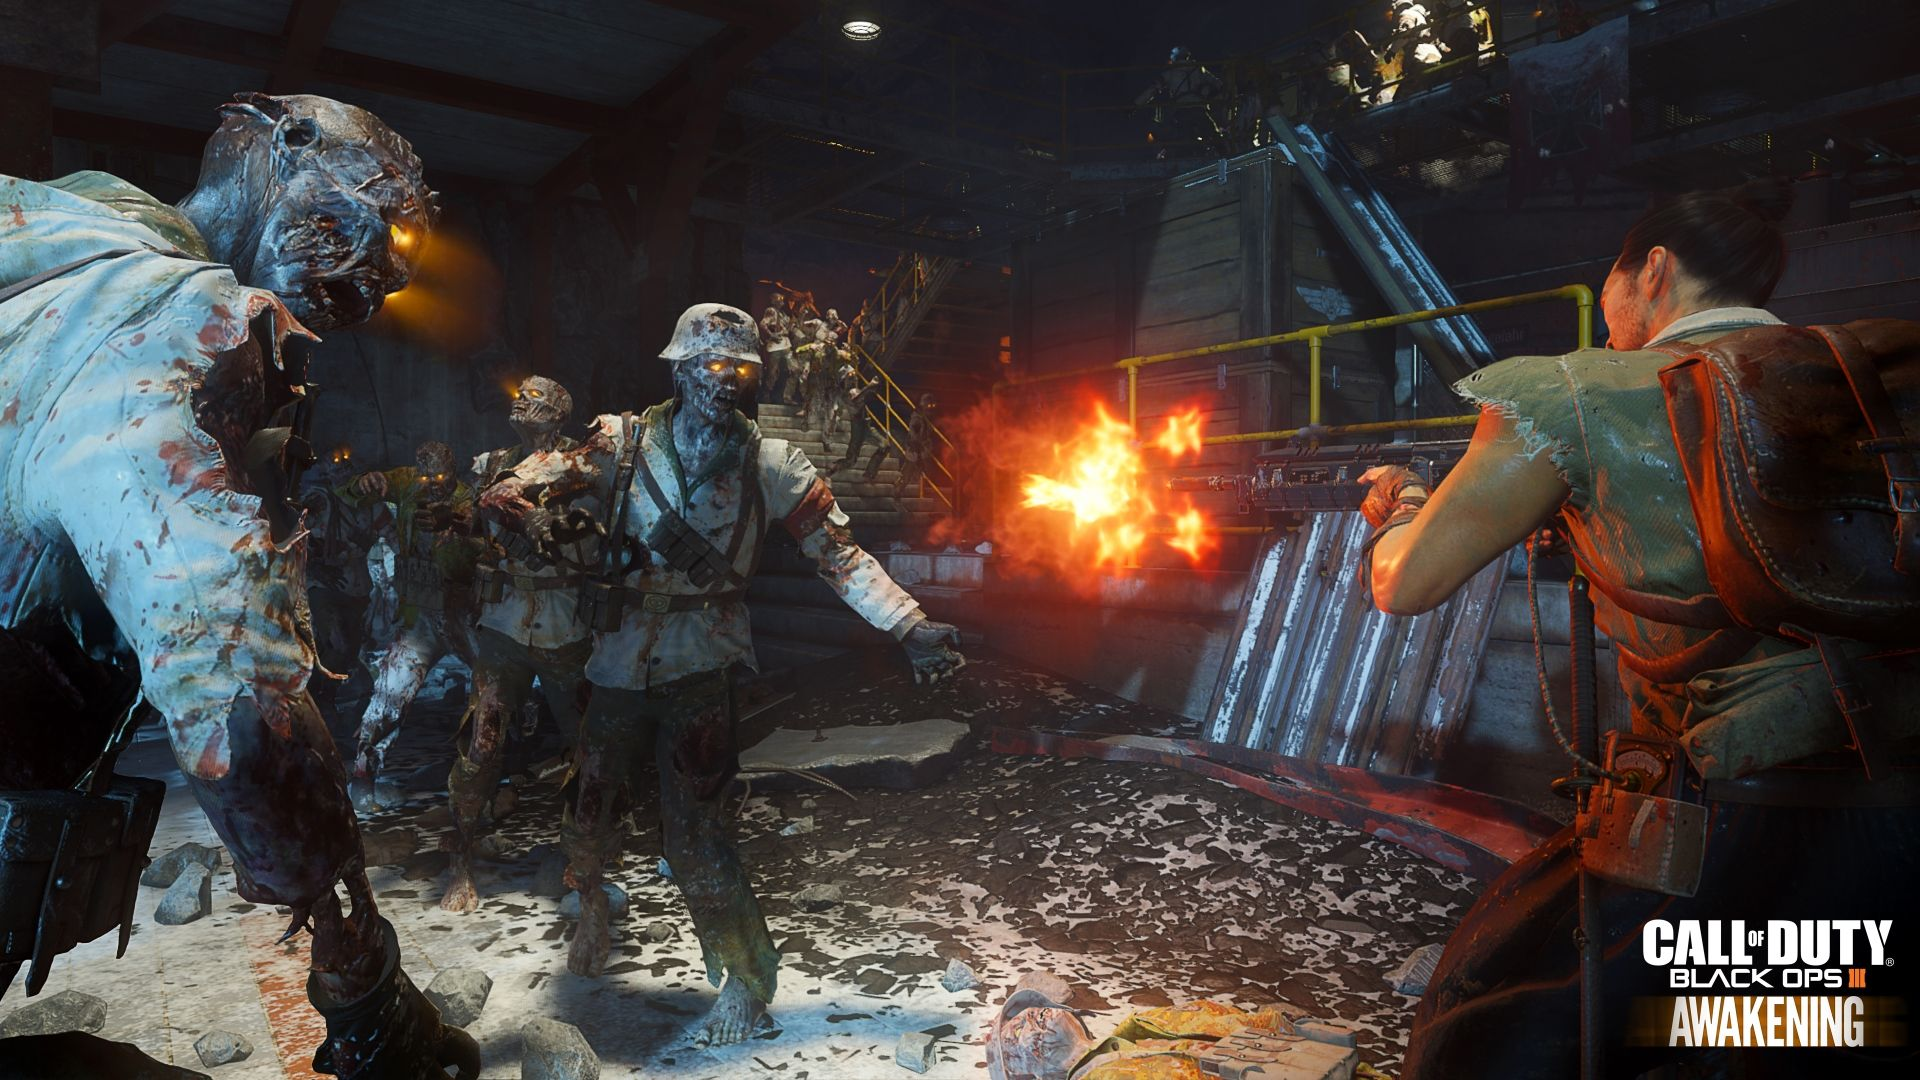 Call of Duty: Black Ops III Awakening will be only DLC